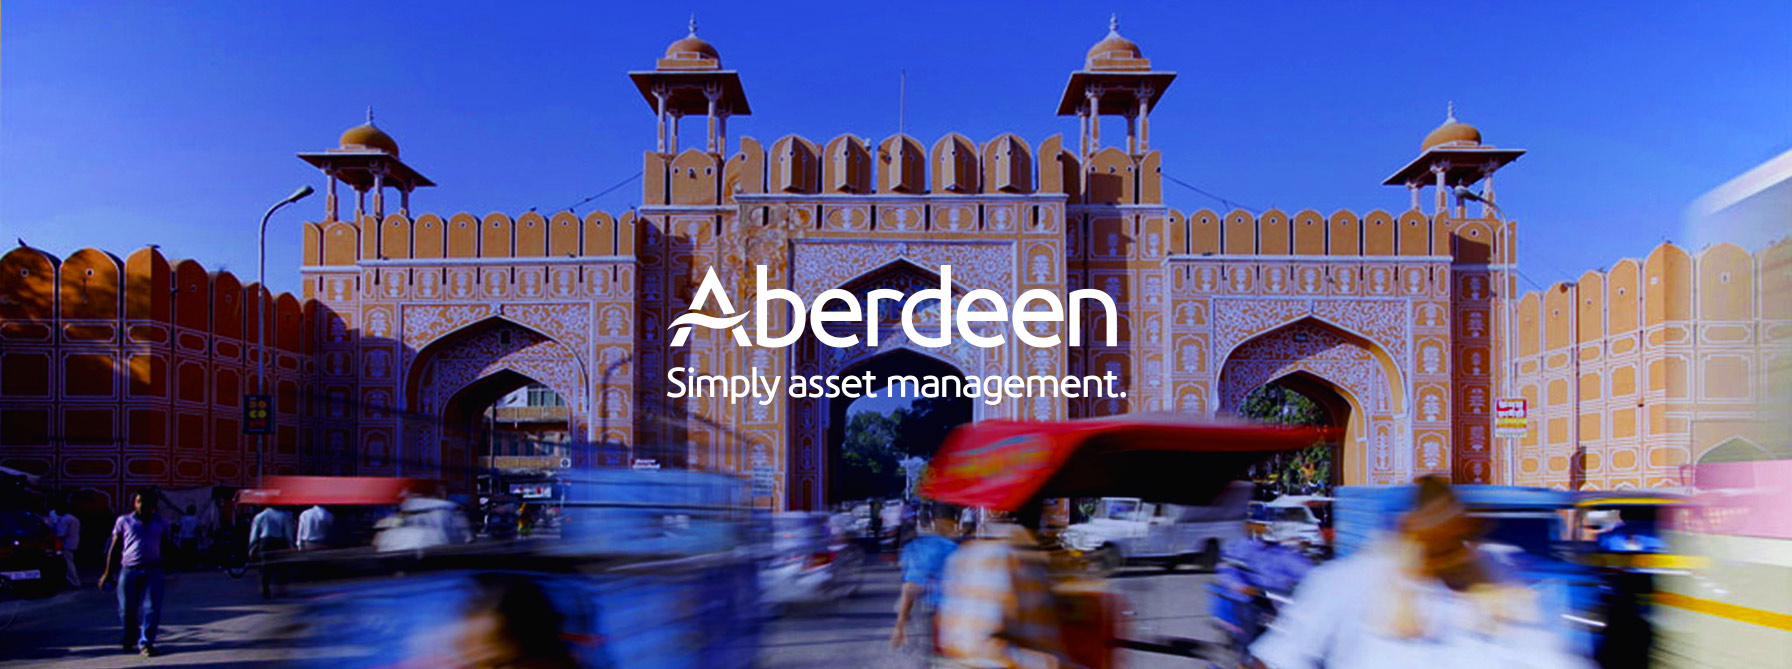 aberdeen_thinking_aloud_banner header